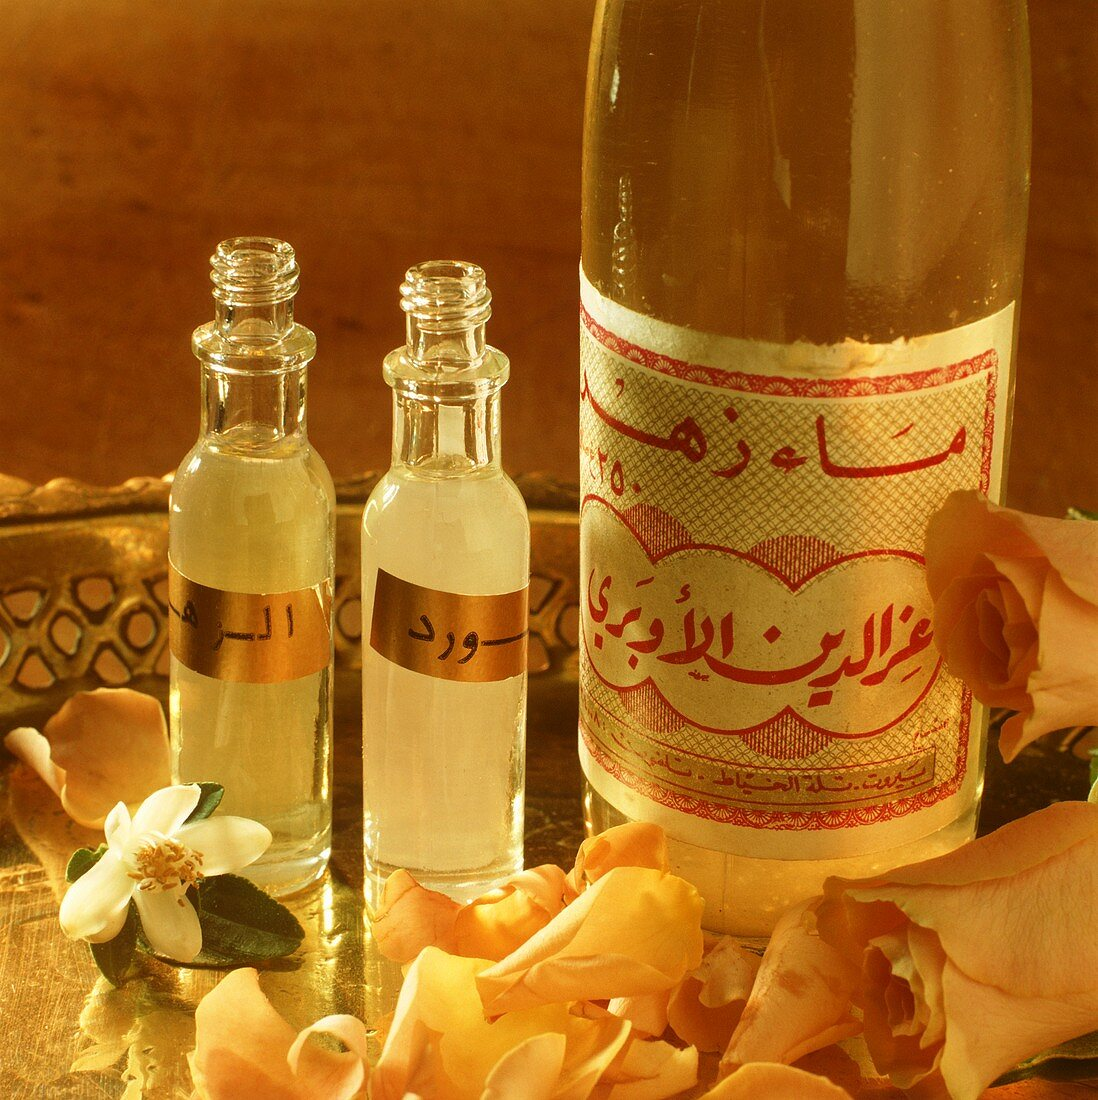 Orange blossom and rose water from Arabia